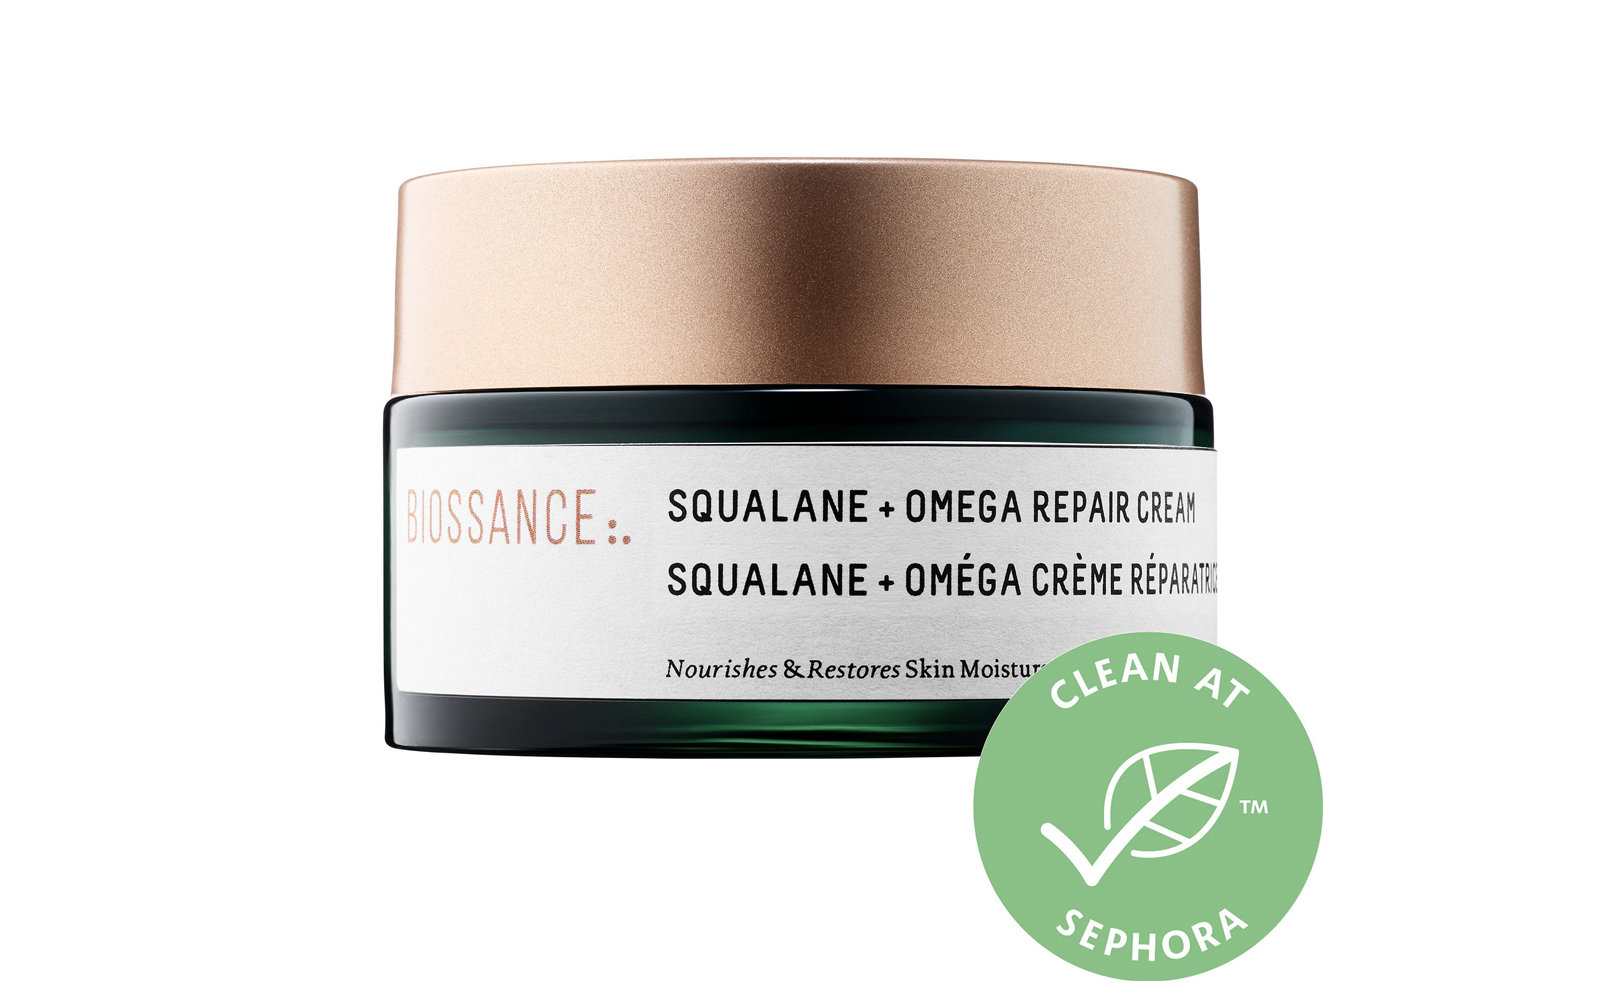 Sephora Biossance Repair Cream